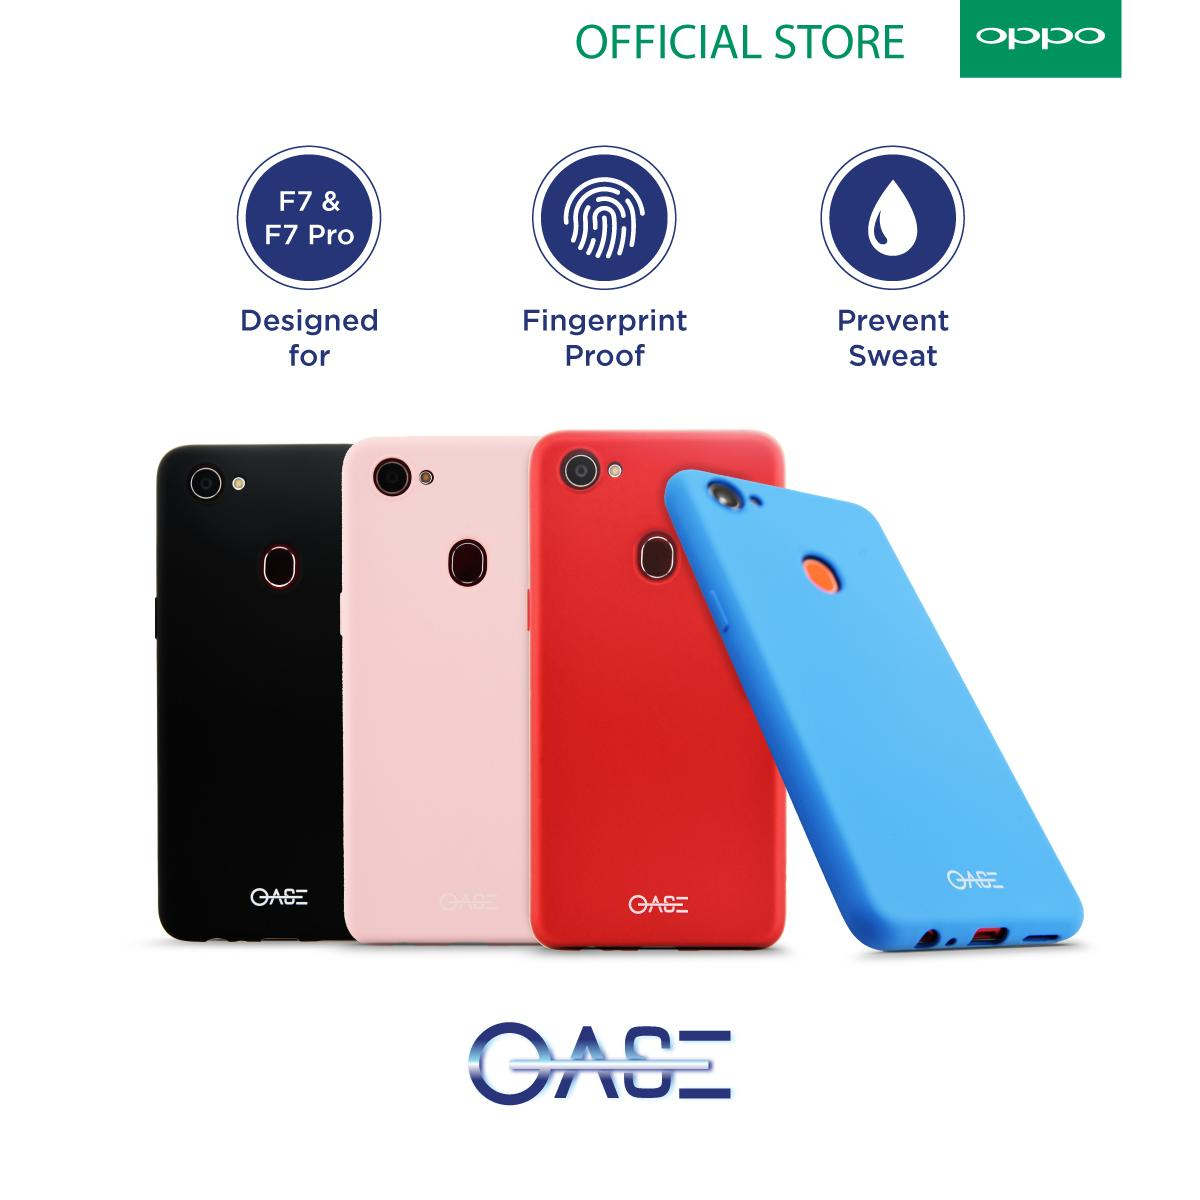 OPPO F7 Case 4GB & 6GB- OPPO Official Accessories